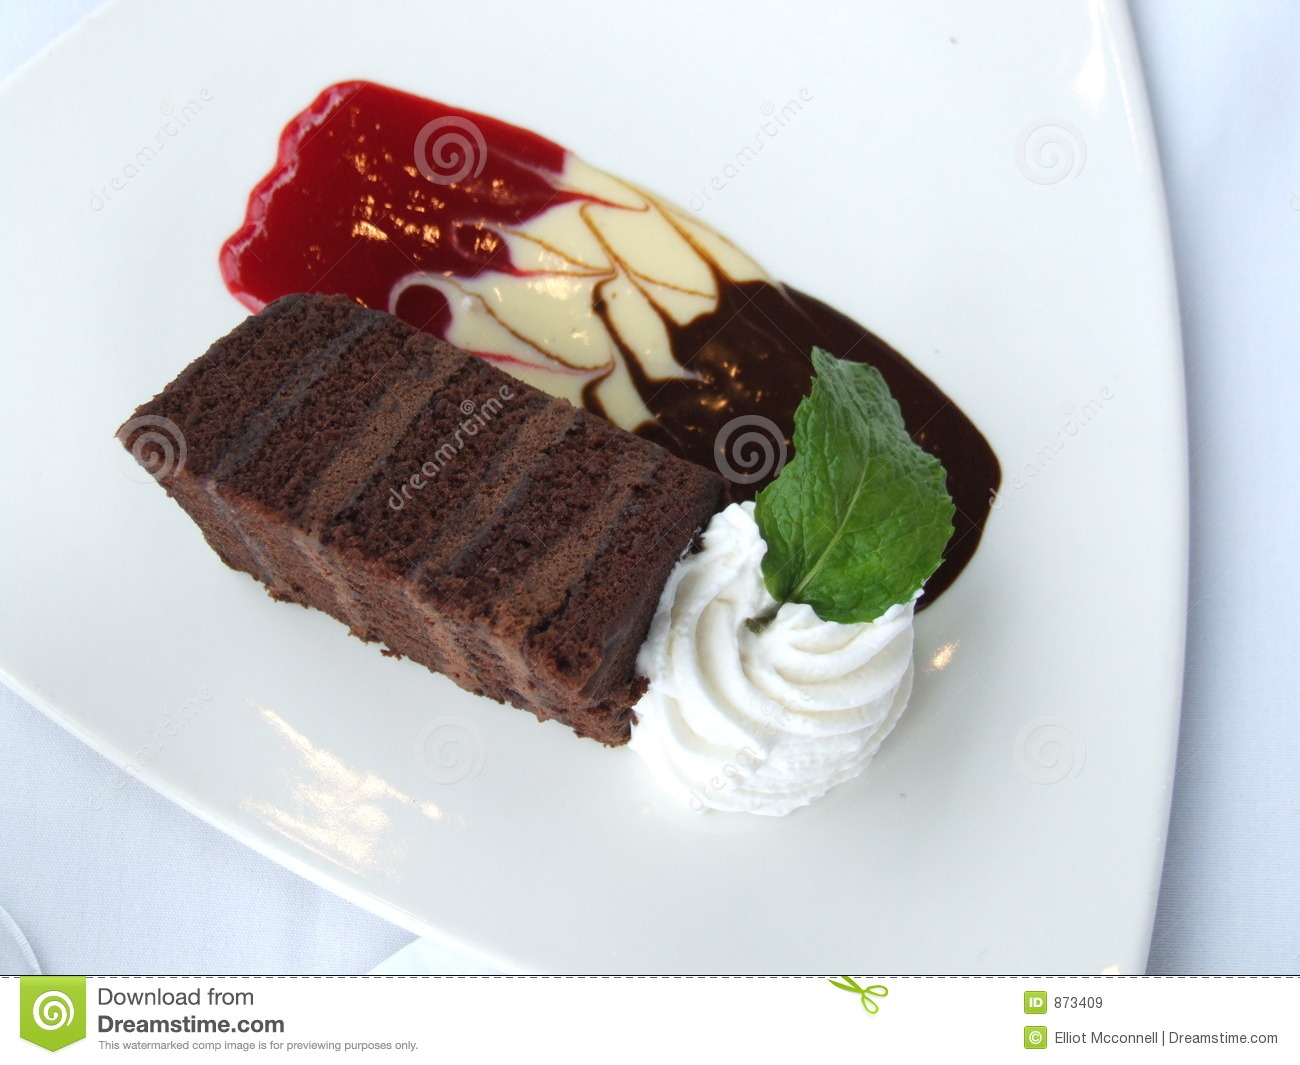 Fancy Chocolate Cake Images : Fancy Chocolate Cake stock image. Image of frosting ...